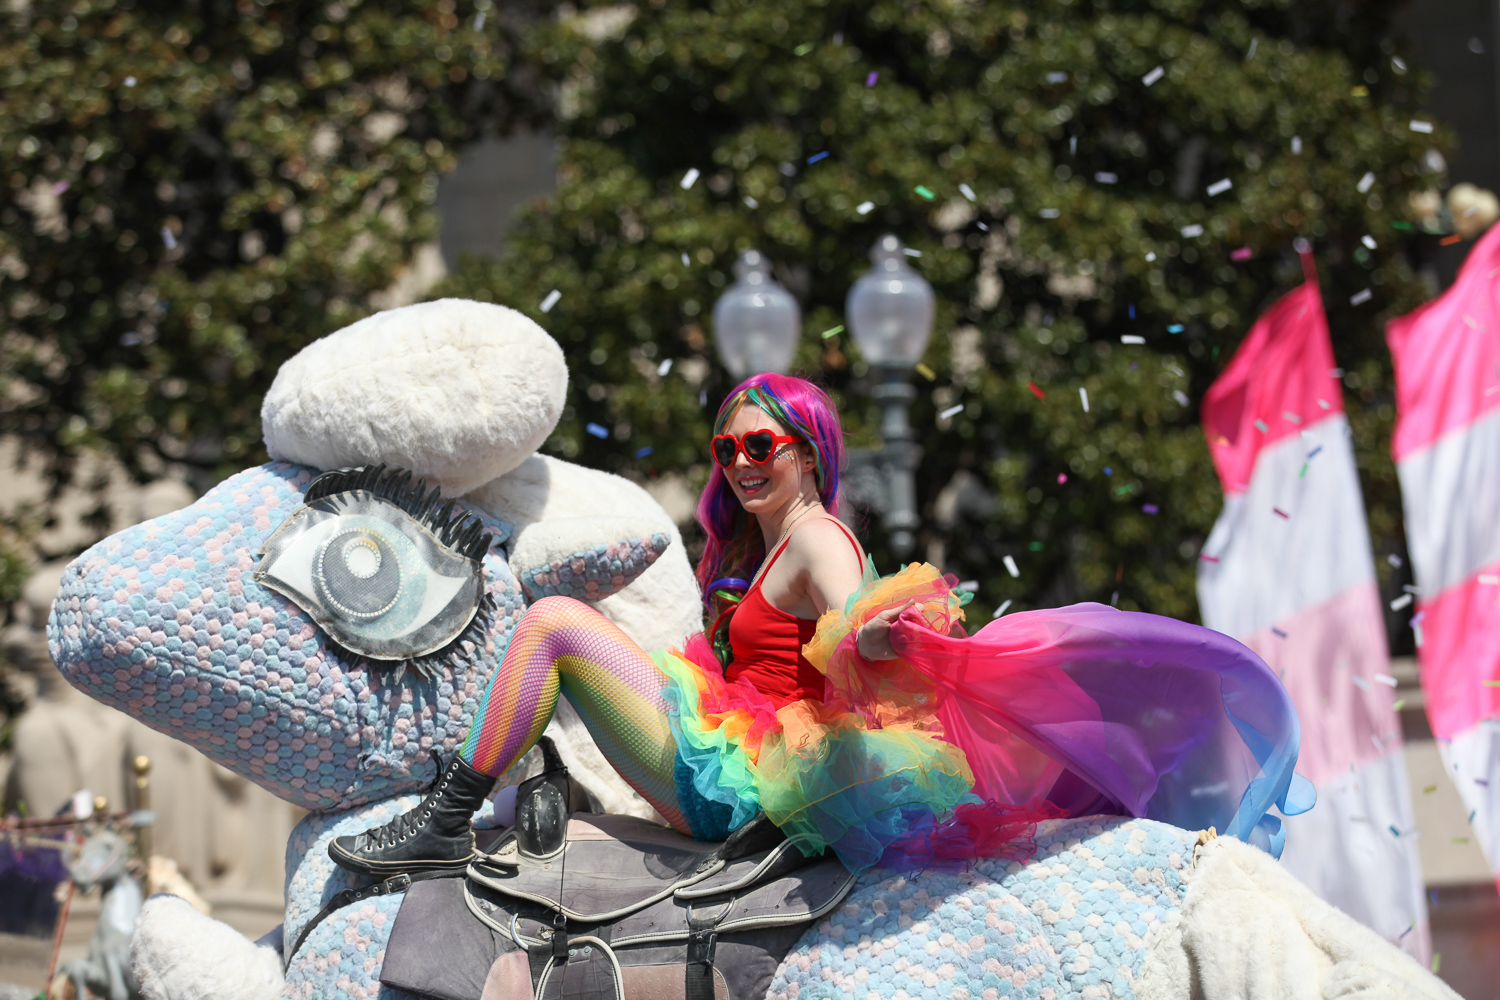 Performers clad in bright hues and took over Constitution Avenue today for the annual Cherry Blossom Parade. Thousands of spectators lined the streets to watch marching bands, beauty queens, jump ropers, skateboarders and everything in between. (Amanda Andrade-Rhoades/DC Refined)